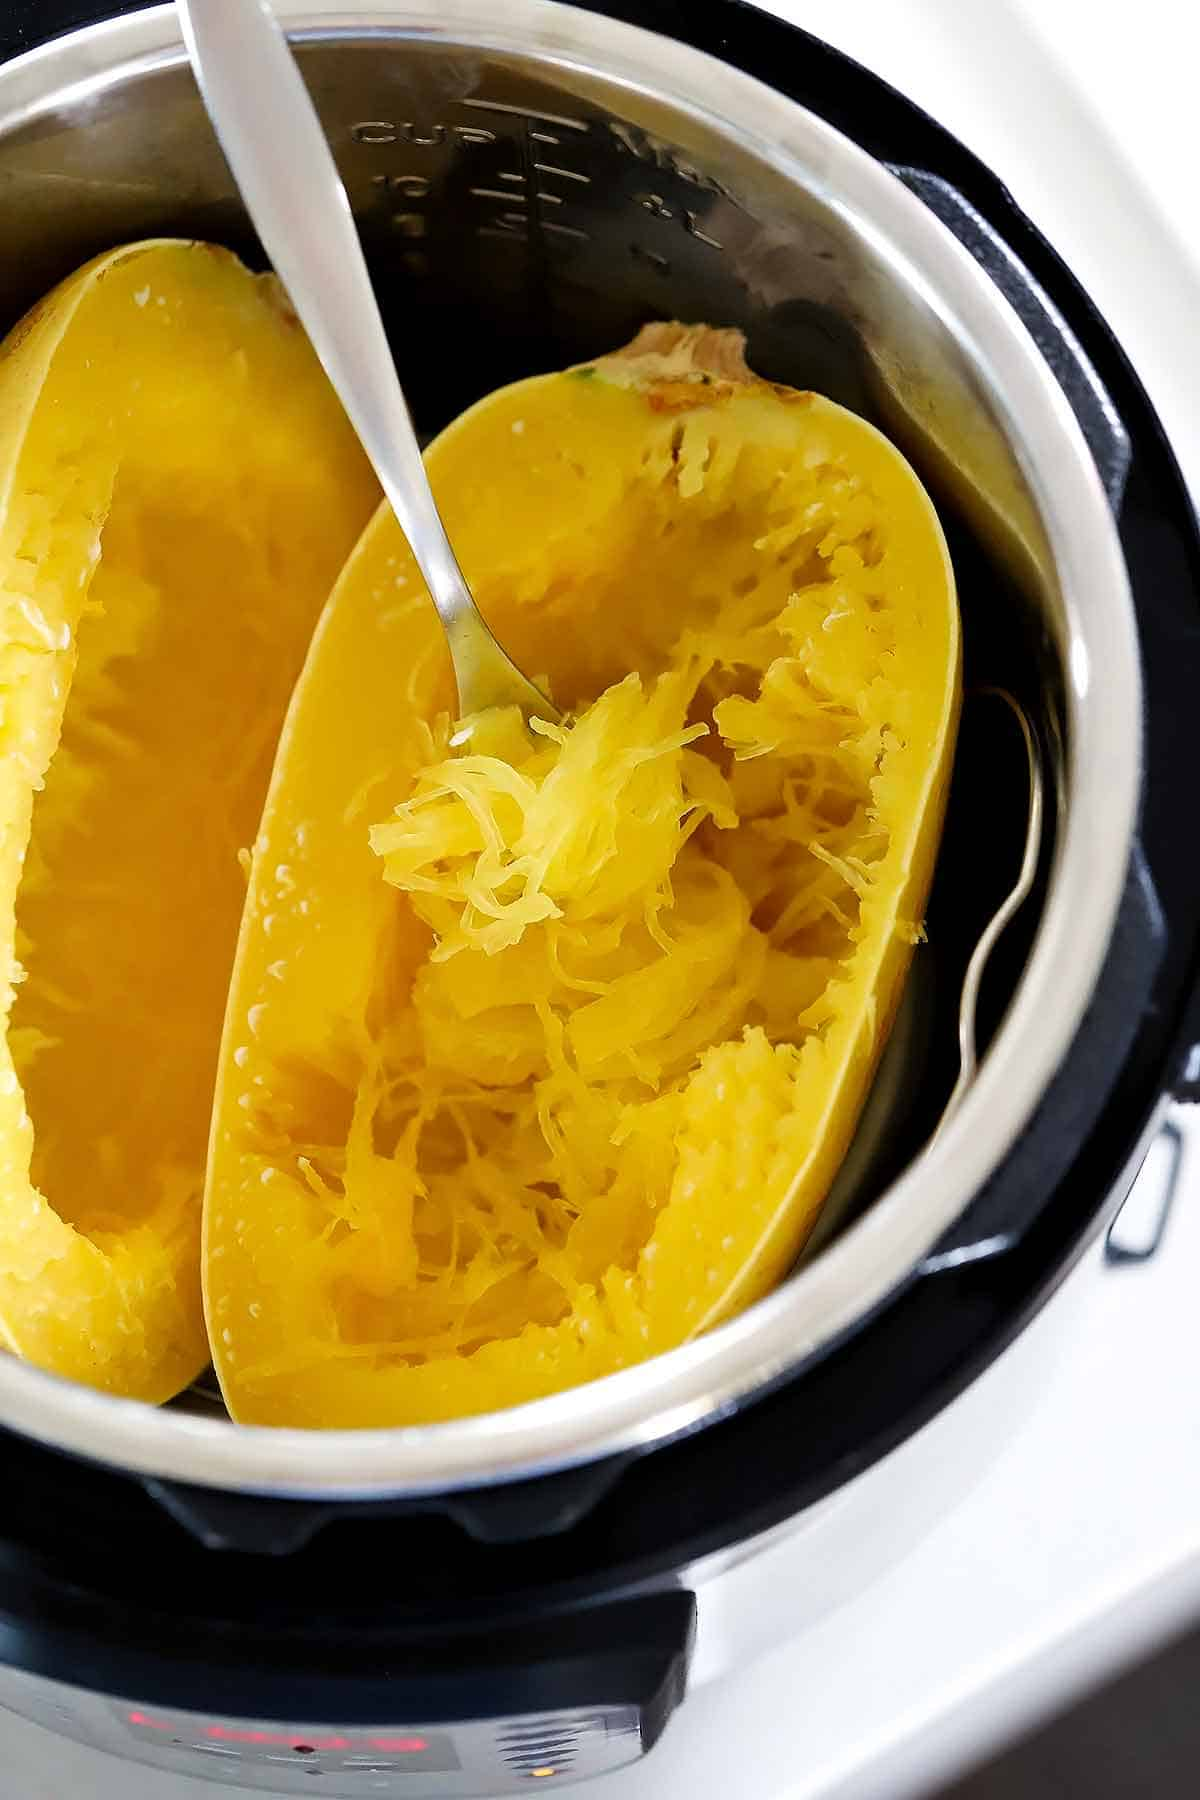 Using the tines of a fork to scoop out spaghetti squash noodles in an instant pot.